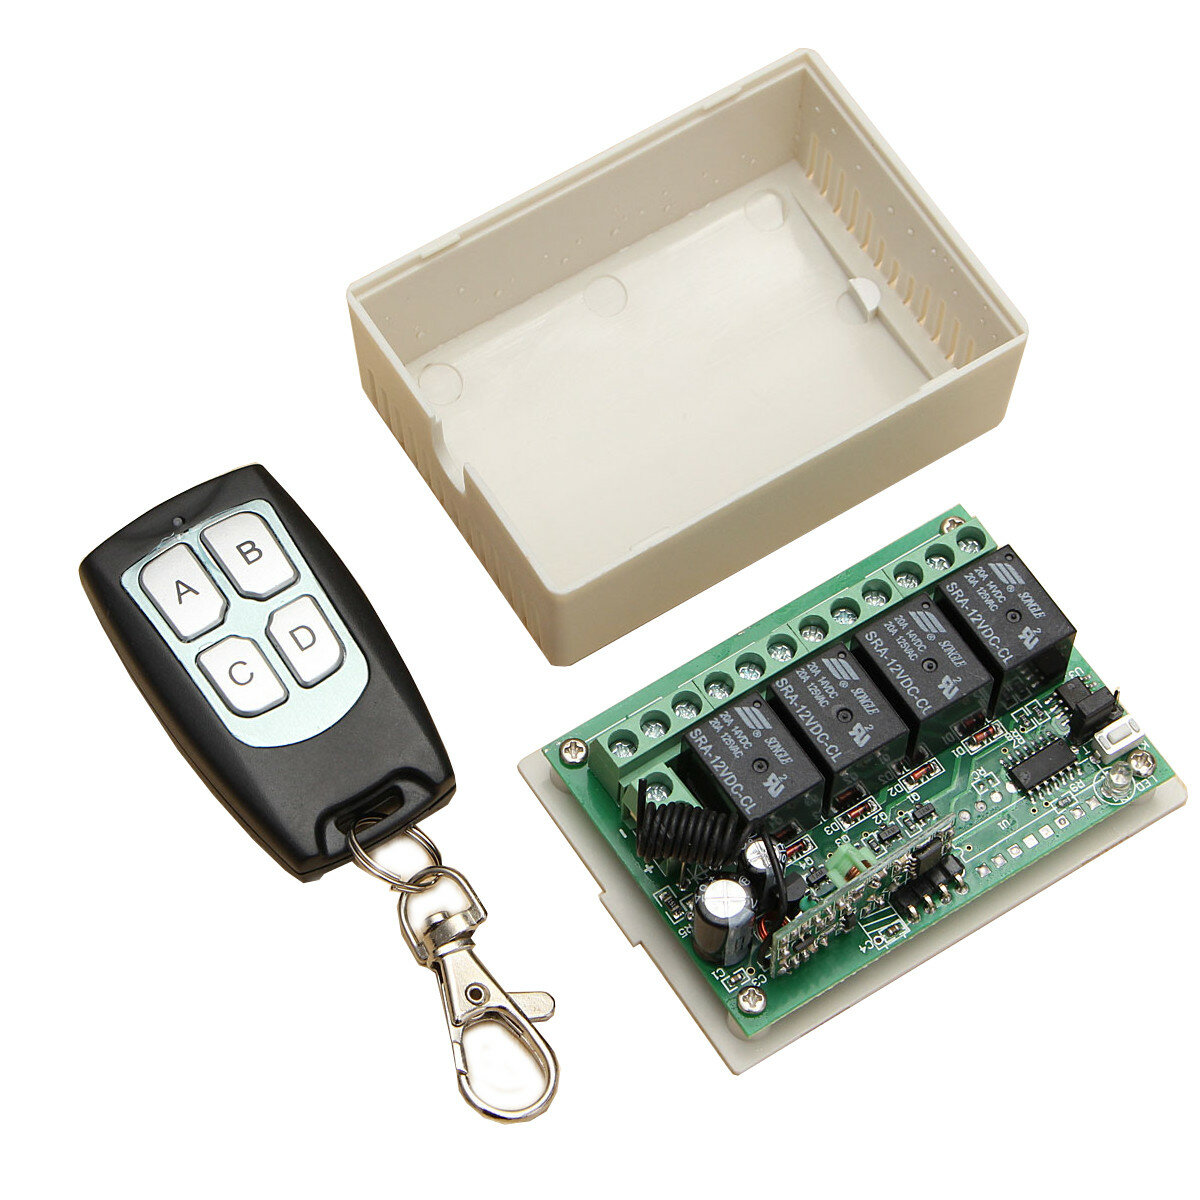 Geekcreit 12v 4ch Channel 433mhz Wireless Remote Control Switch Circuit Diagram Of Tester Transceiver Receiver Module